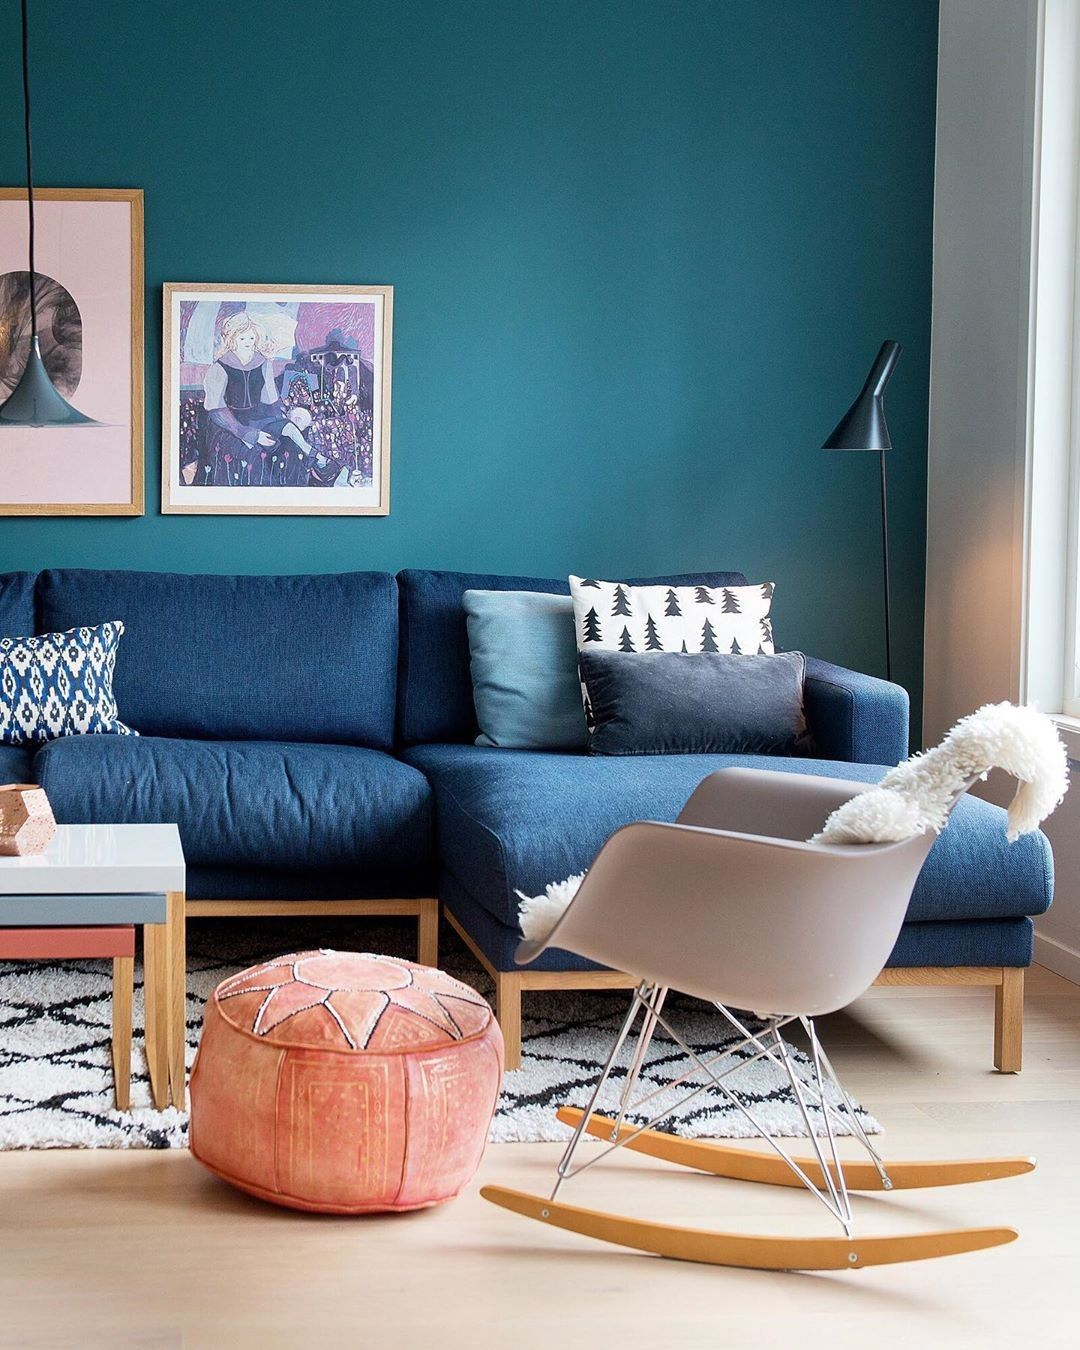 Big News! Almost Every Single Photo On Apartment Therapy